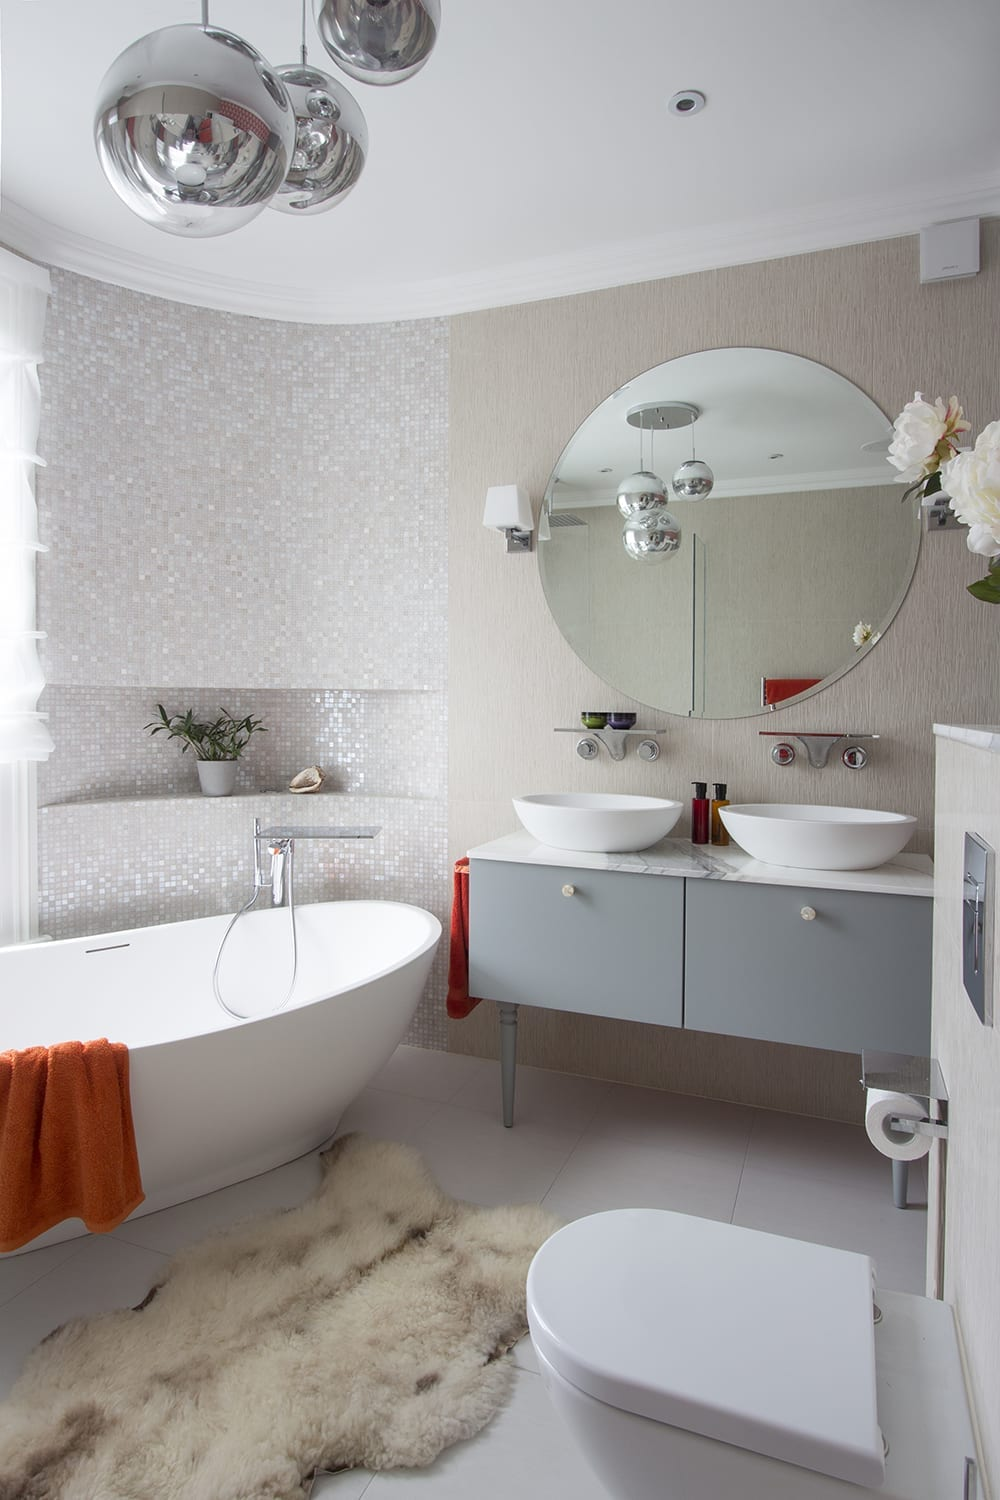 How to Attain an Art Deco Look in Your Bathroom - Amberth